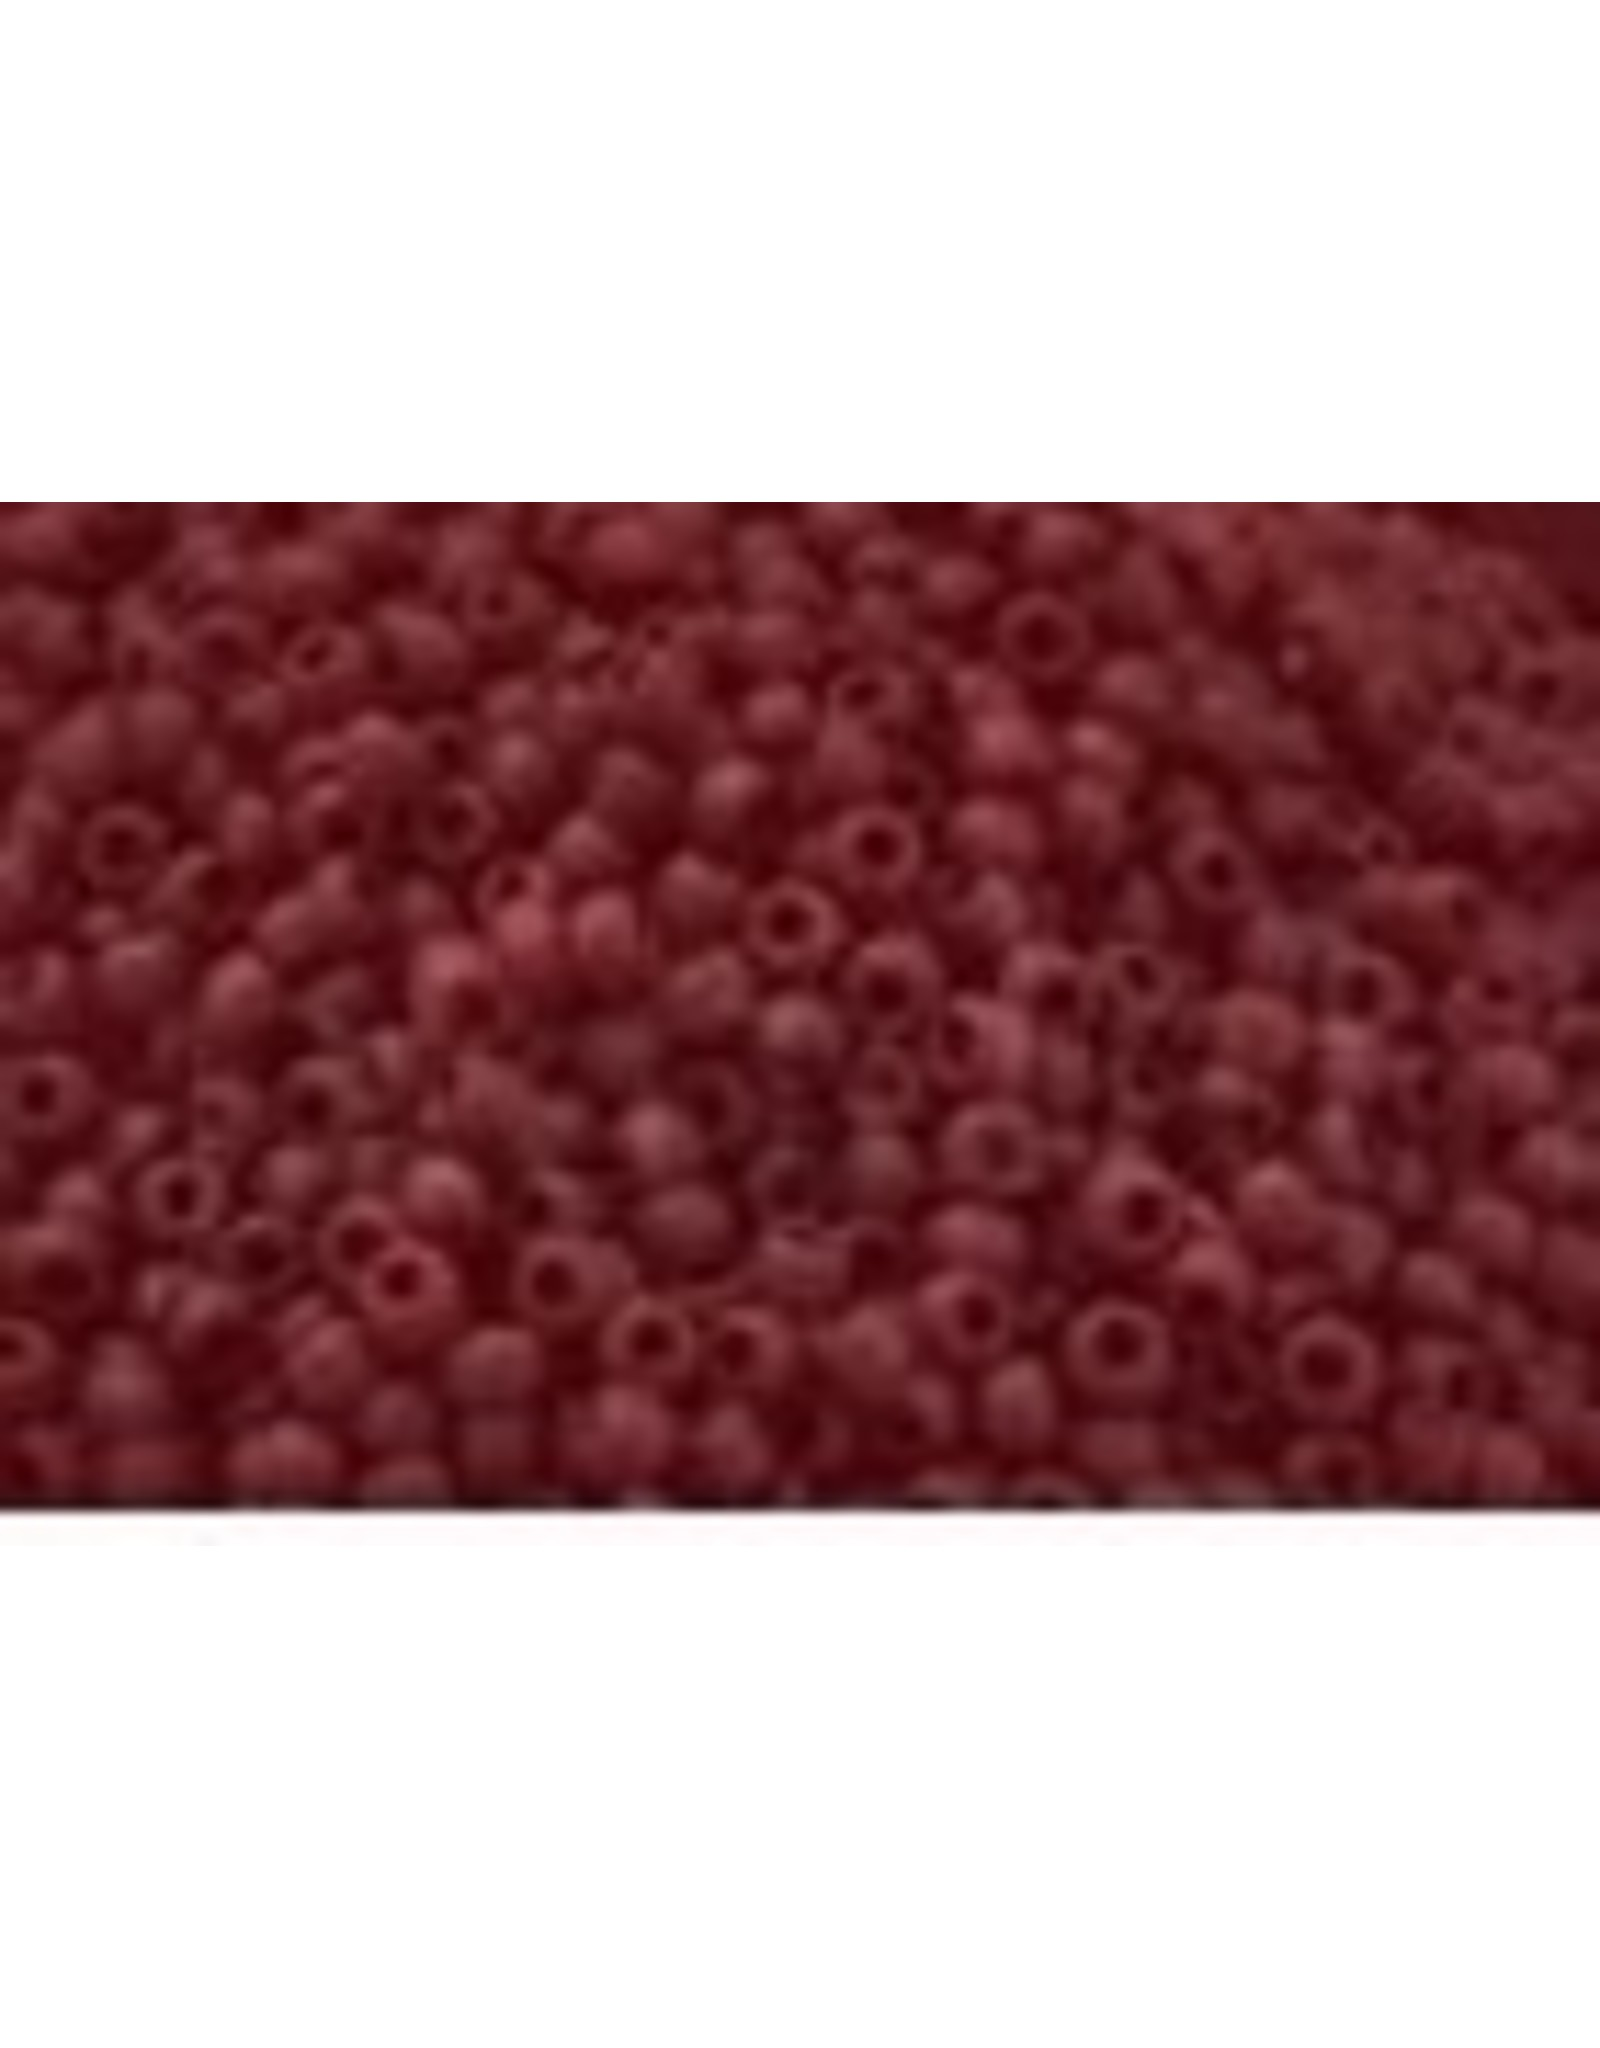 Czech 2326 10   Seed 20g  Transparent Dark Red Matte